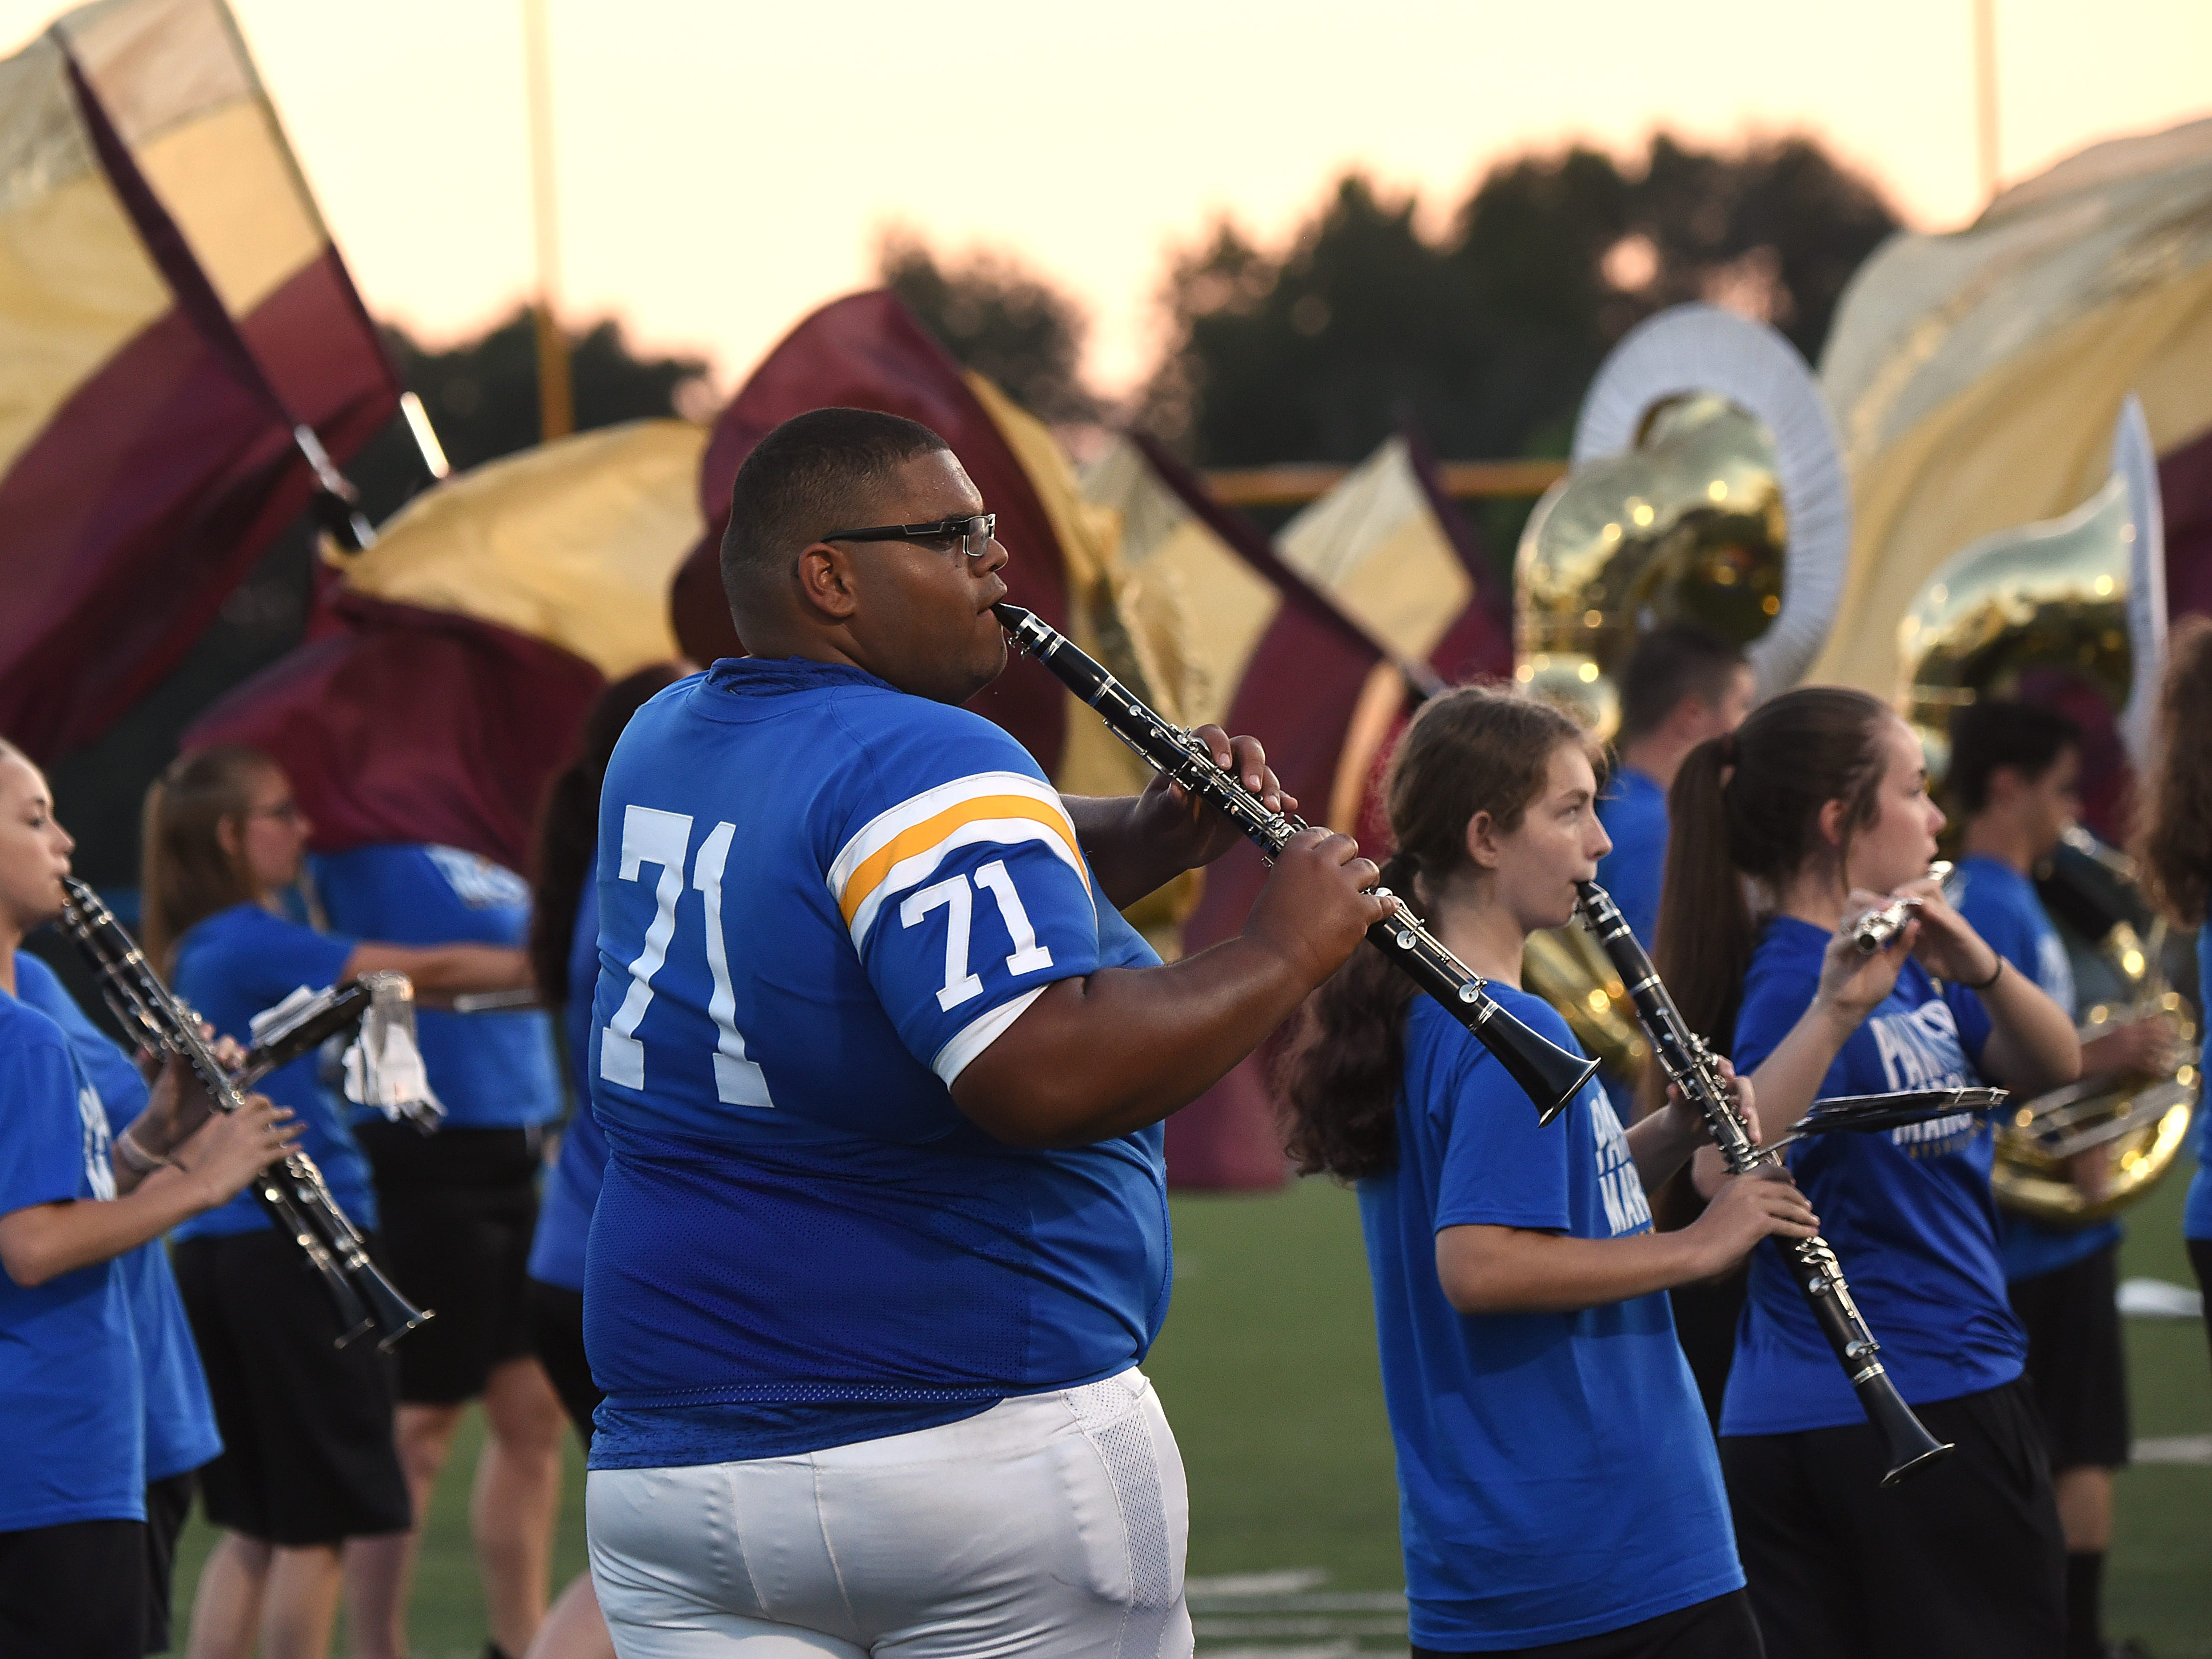 Maysville football player Jakob Plummer performs with the marching band during halftime on Thursday, Aug. 23, 2018.